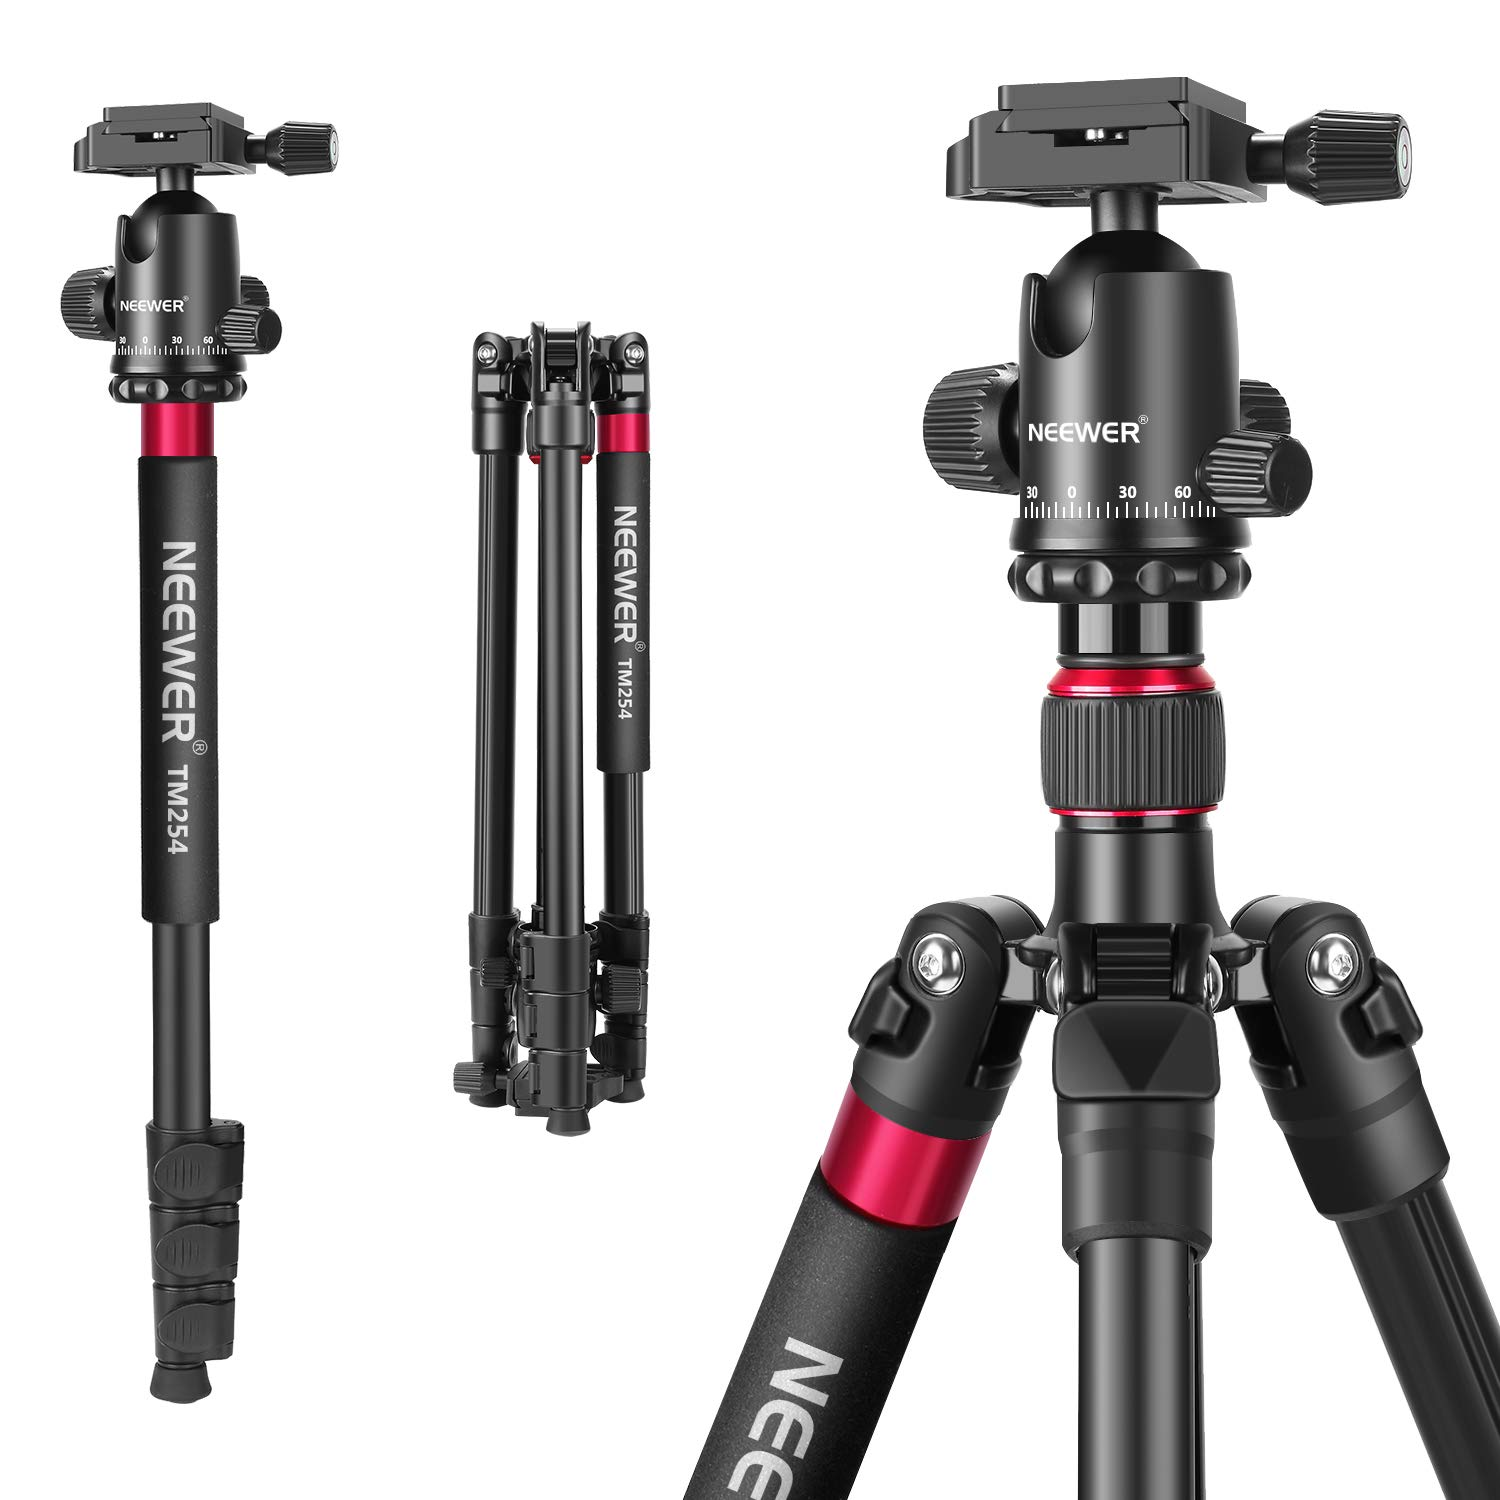 Neewer 2-in-1 Aluminum Alloy Camera Tripod Monopod 66 inches/168 Centimeters with 360 Degree Ball Head 1/4 inch QR Plate and Carry Bag for DSLRs Video Camcorders Load up to 26.5 pounds/12 kilograms by Neewer